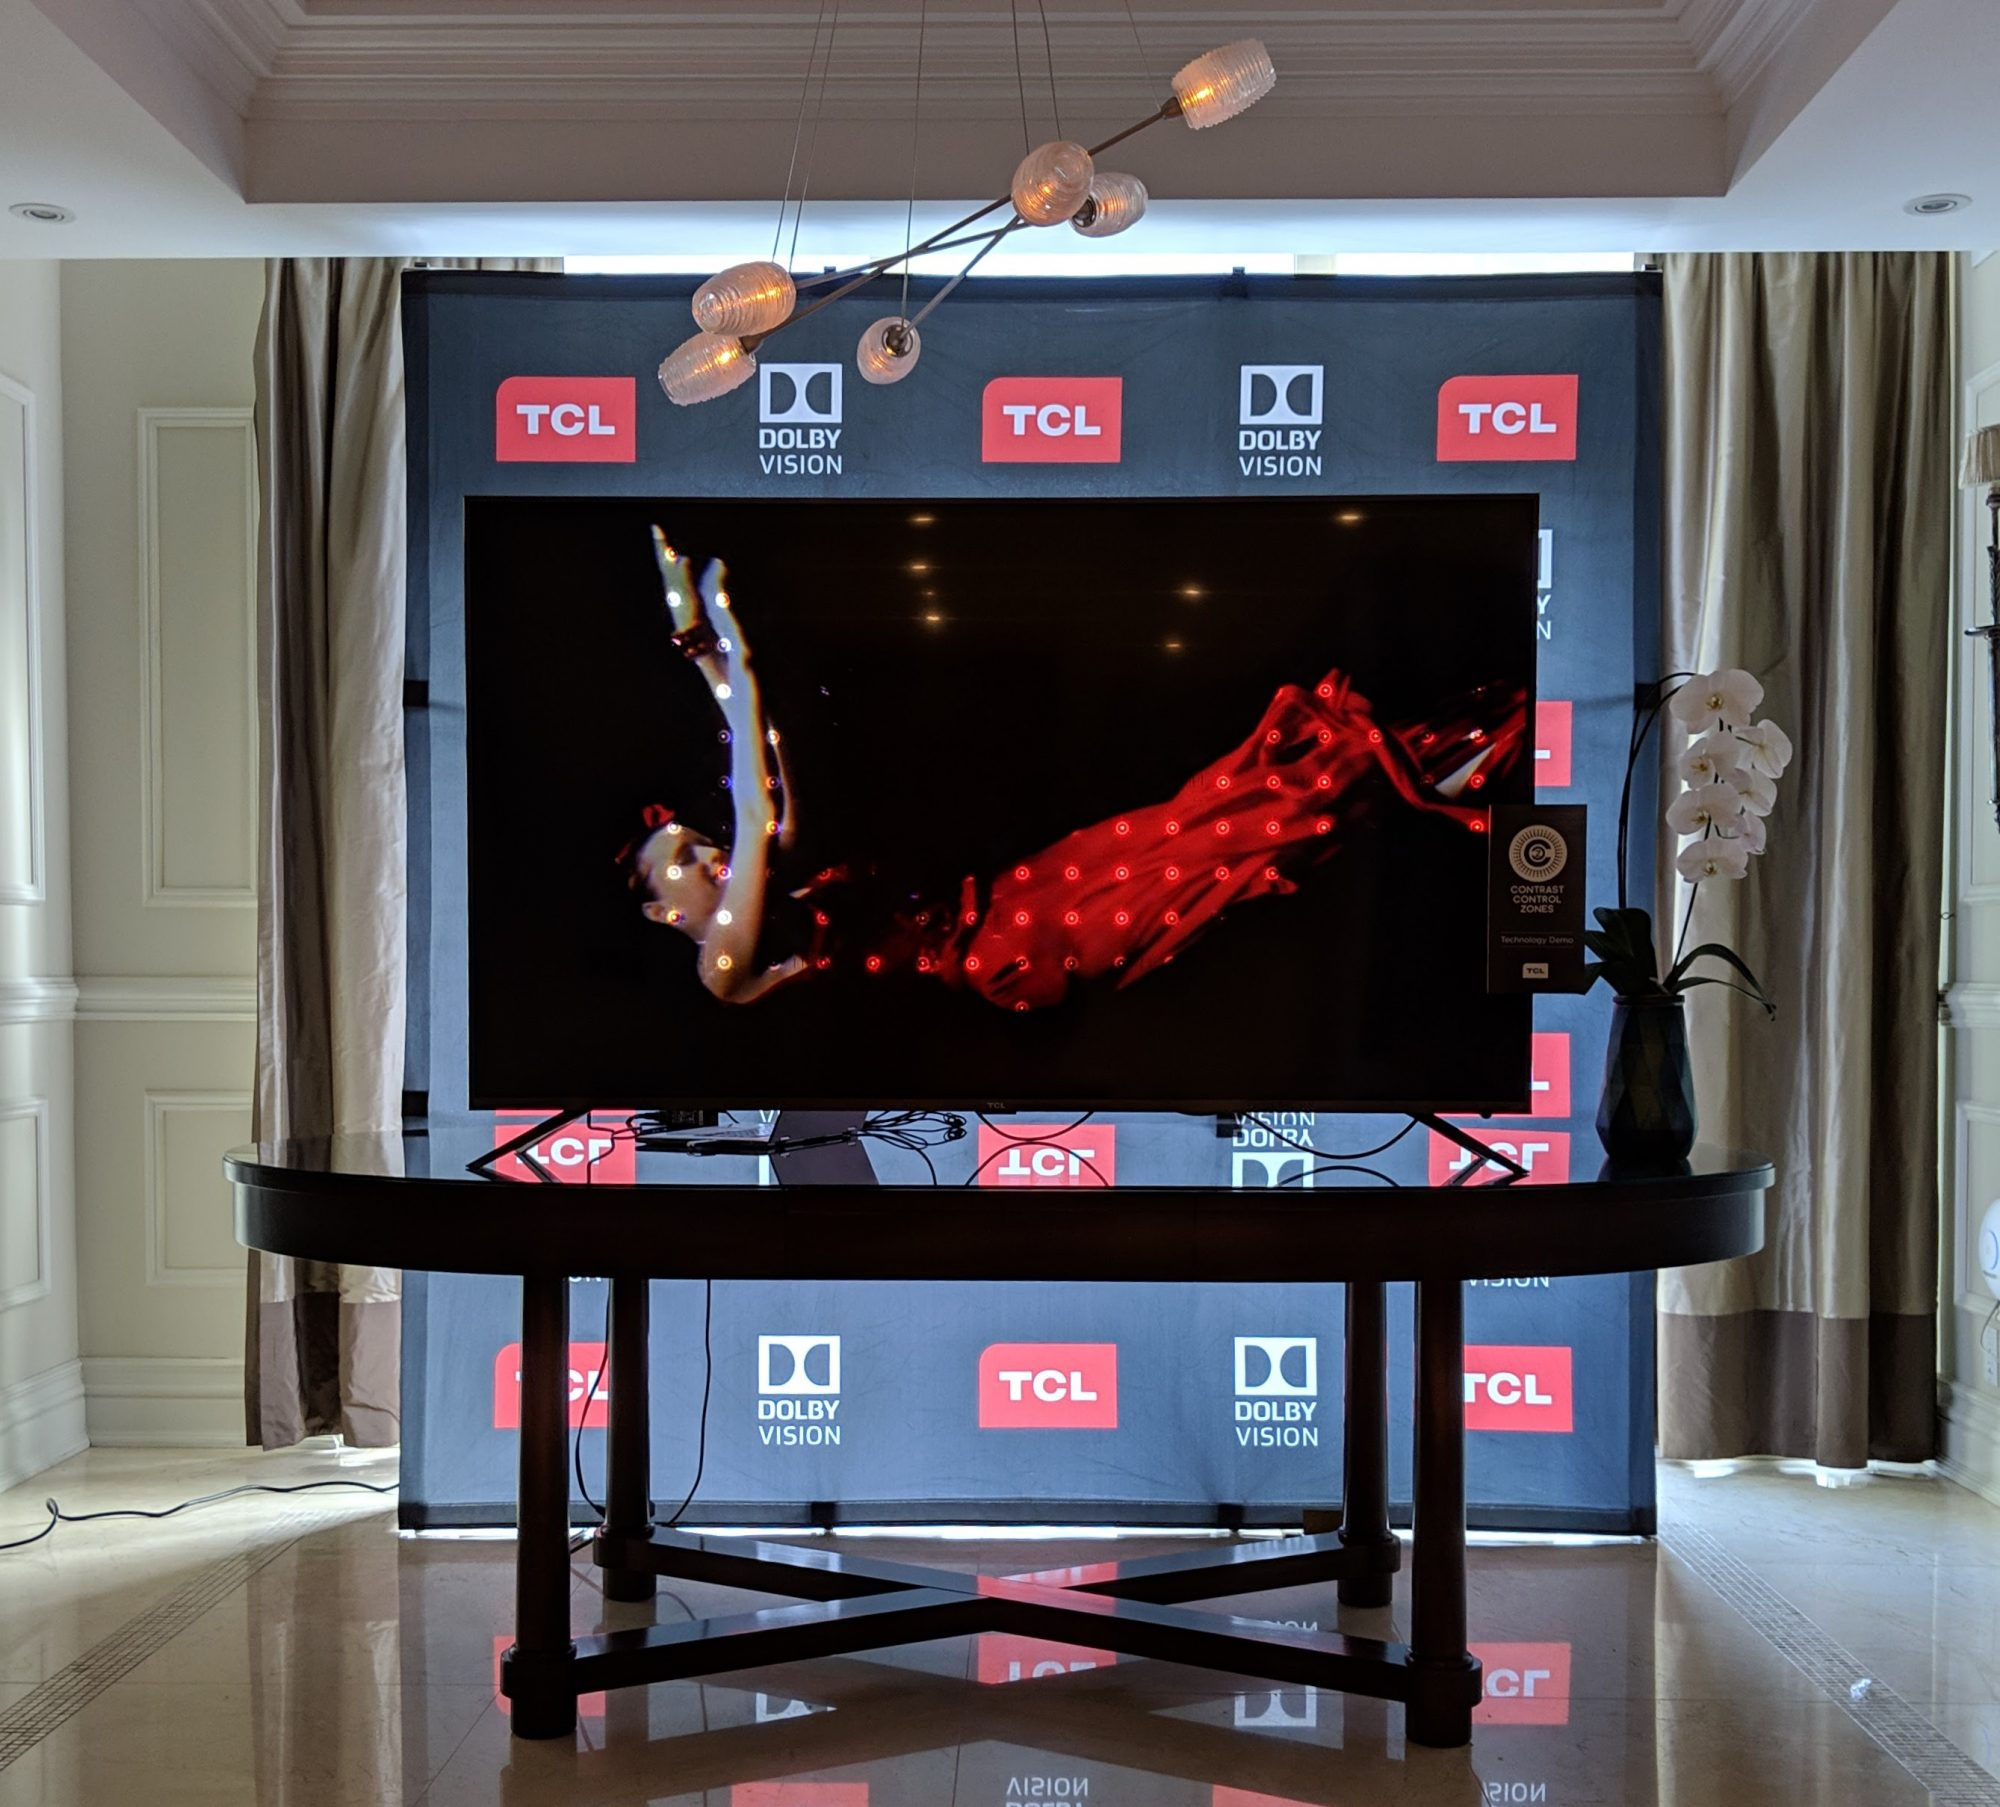 Tcl Brings Its Hdr Smart Tvs To Canada It Business Contrast Control For Lcds Each White Spot Is A Zone